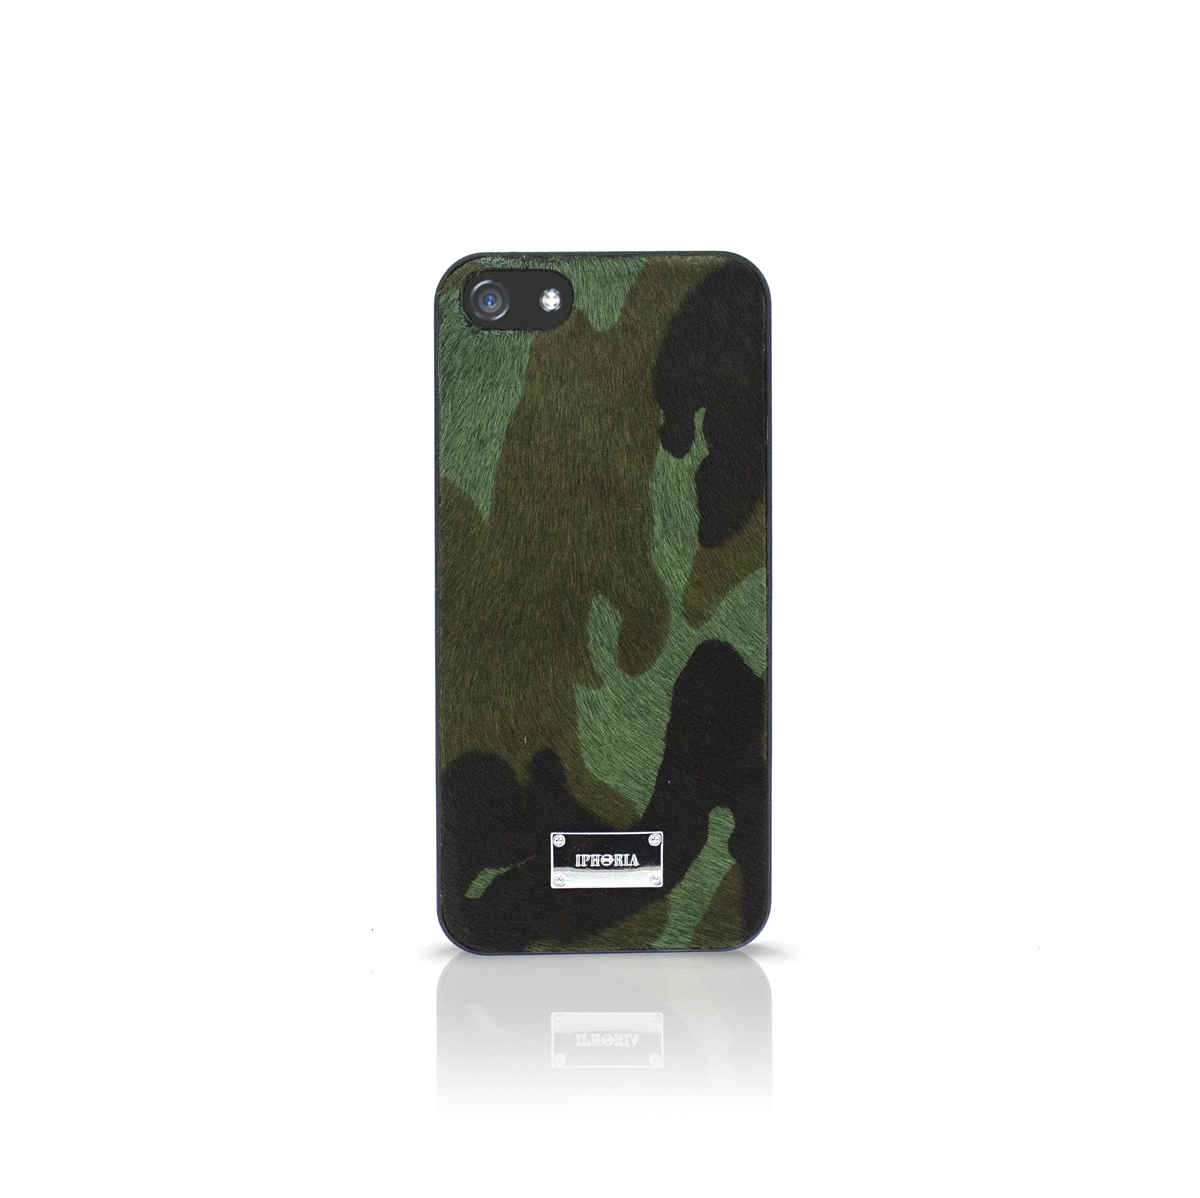 Hardcase Luxury Camouflage für Apple iPhone 5/ 5S/ SE